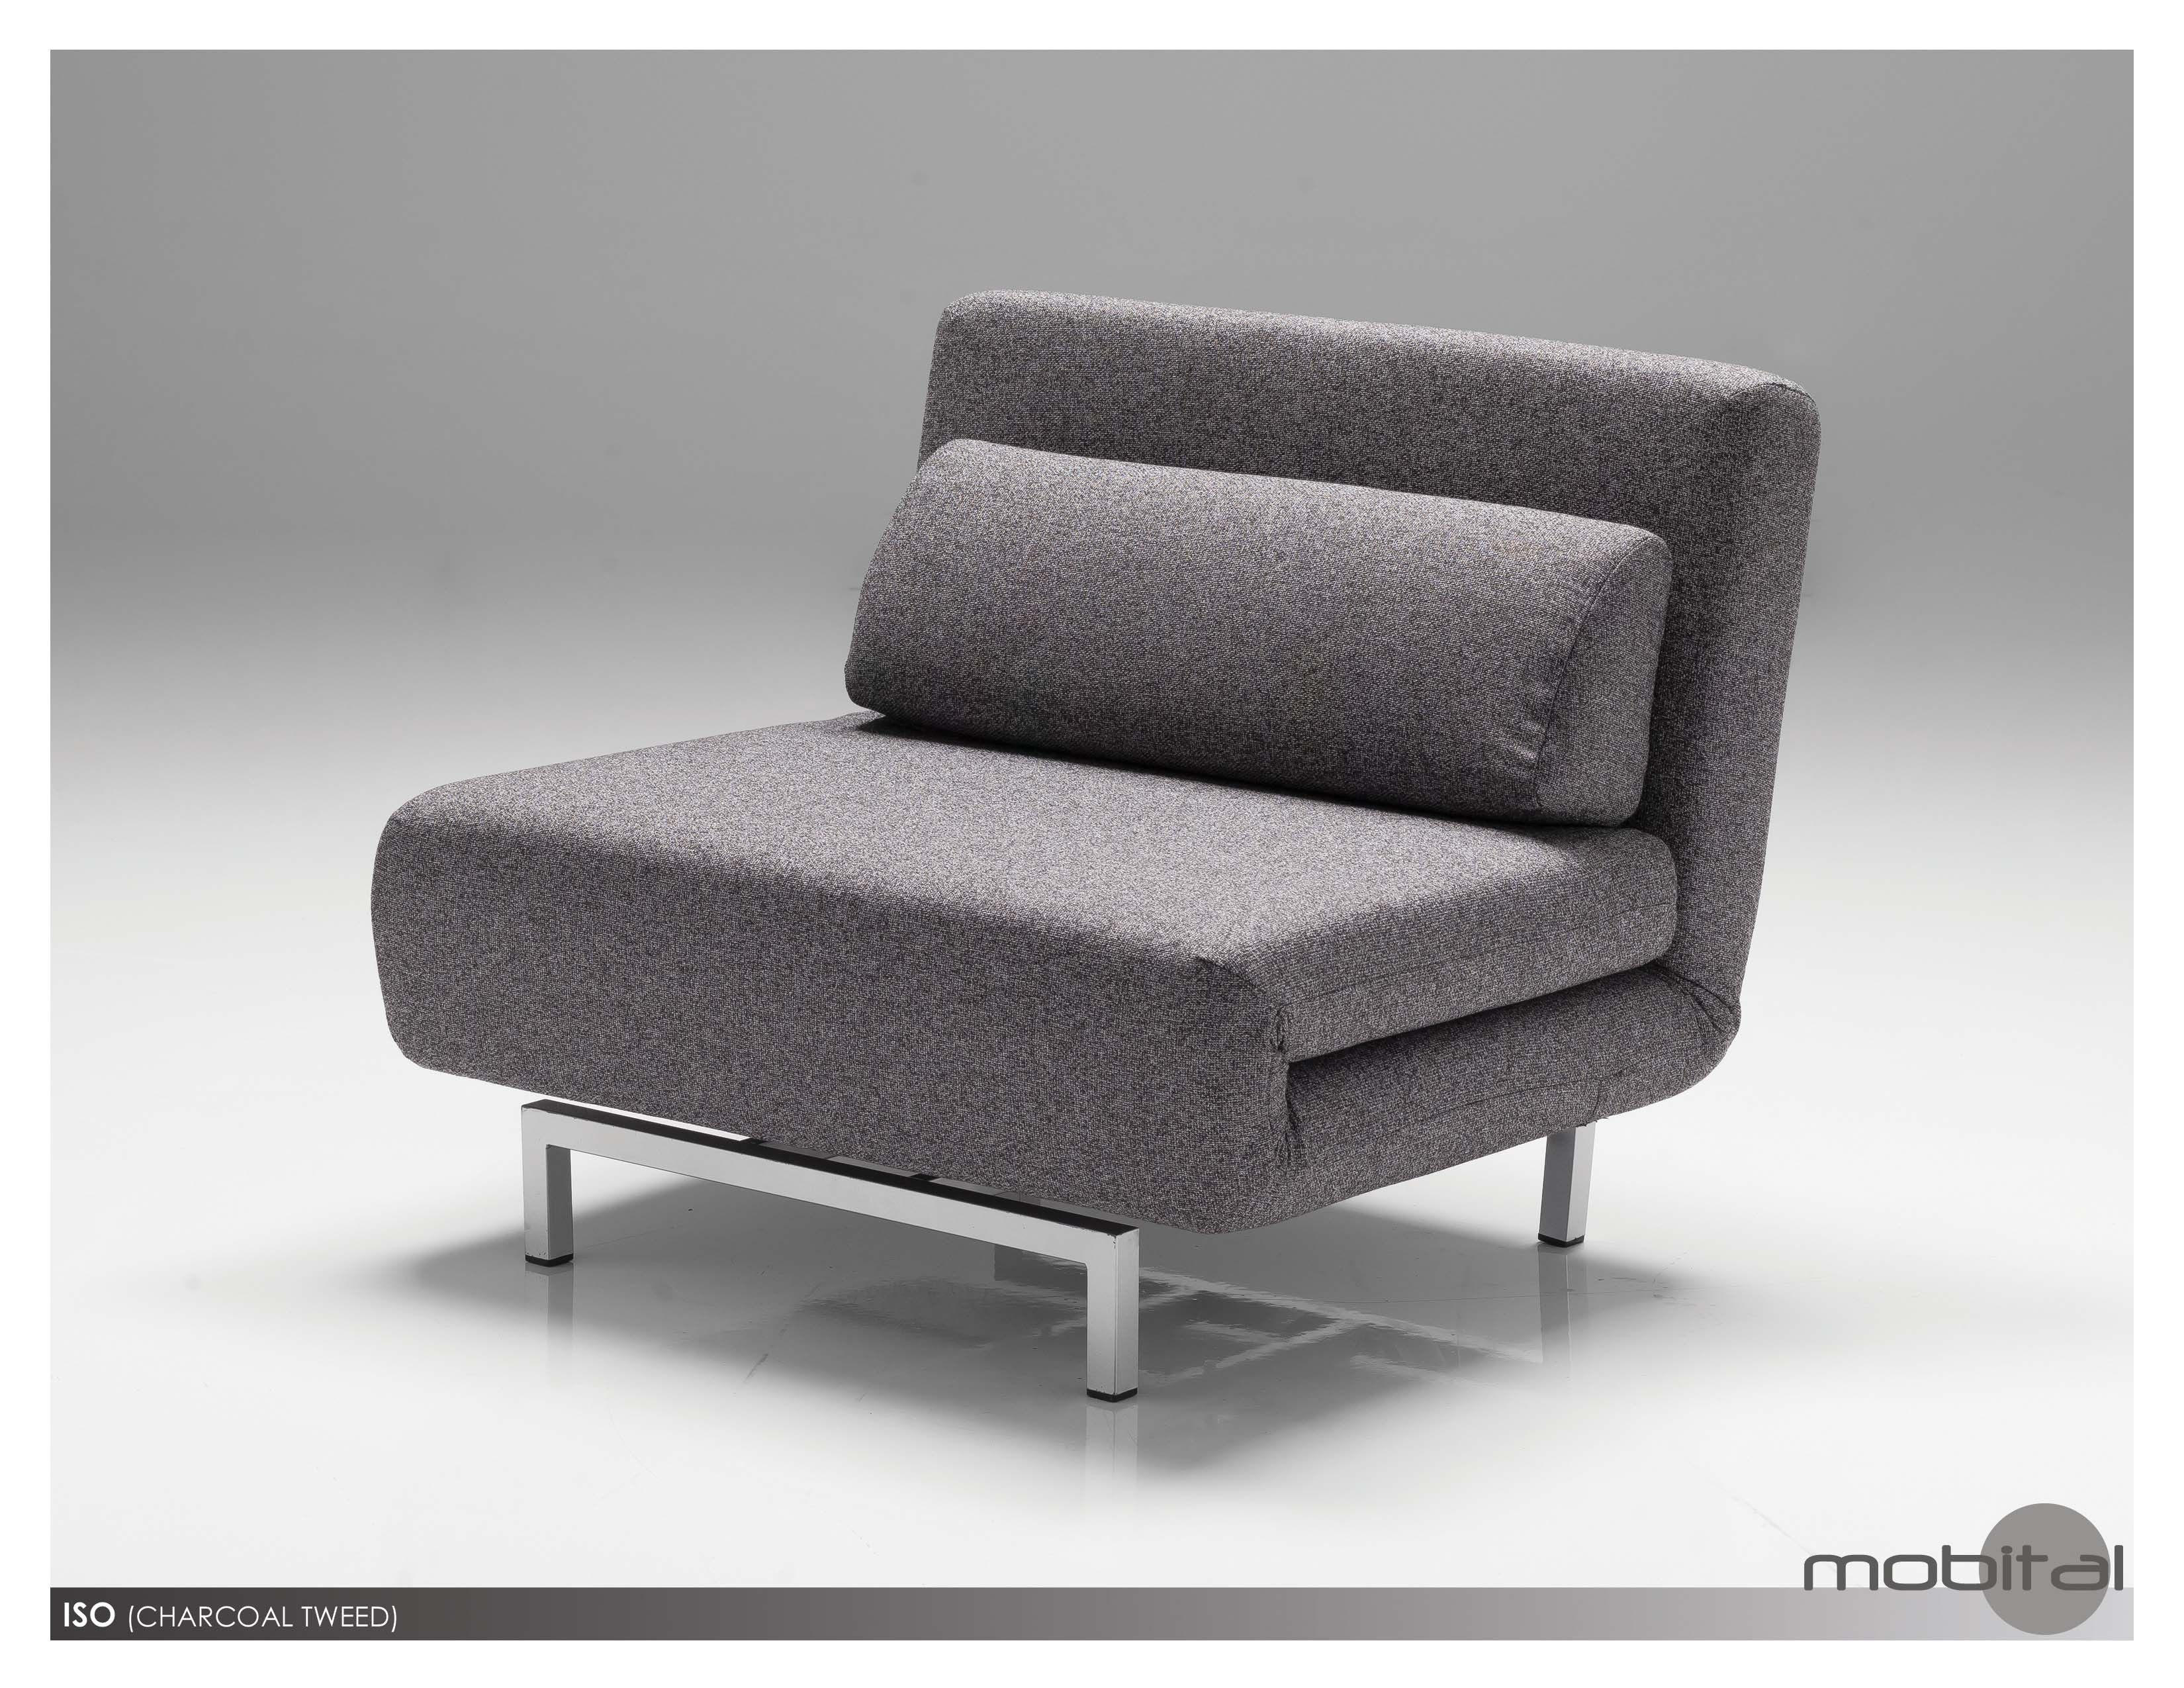 Mobital Iso Sofabed Single Modern Furnishings Throughout Single Chair Sofa Bed (Image 8 of 15)